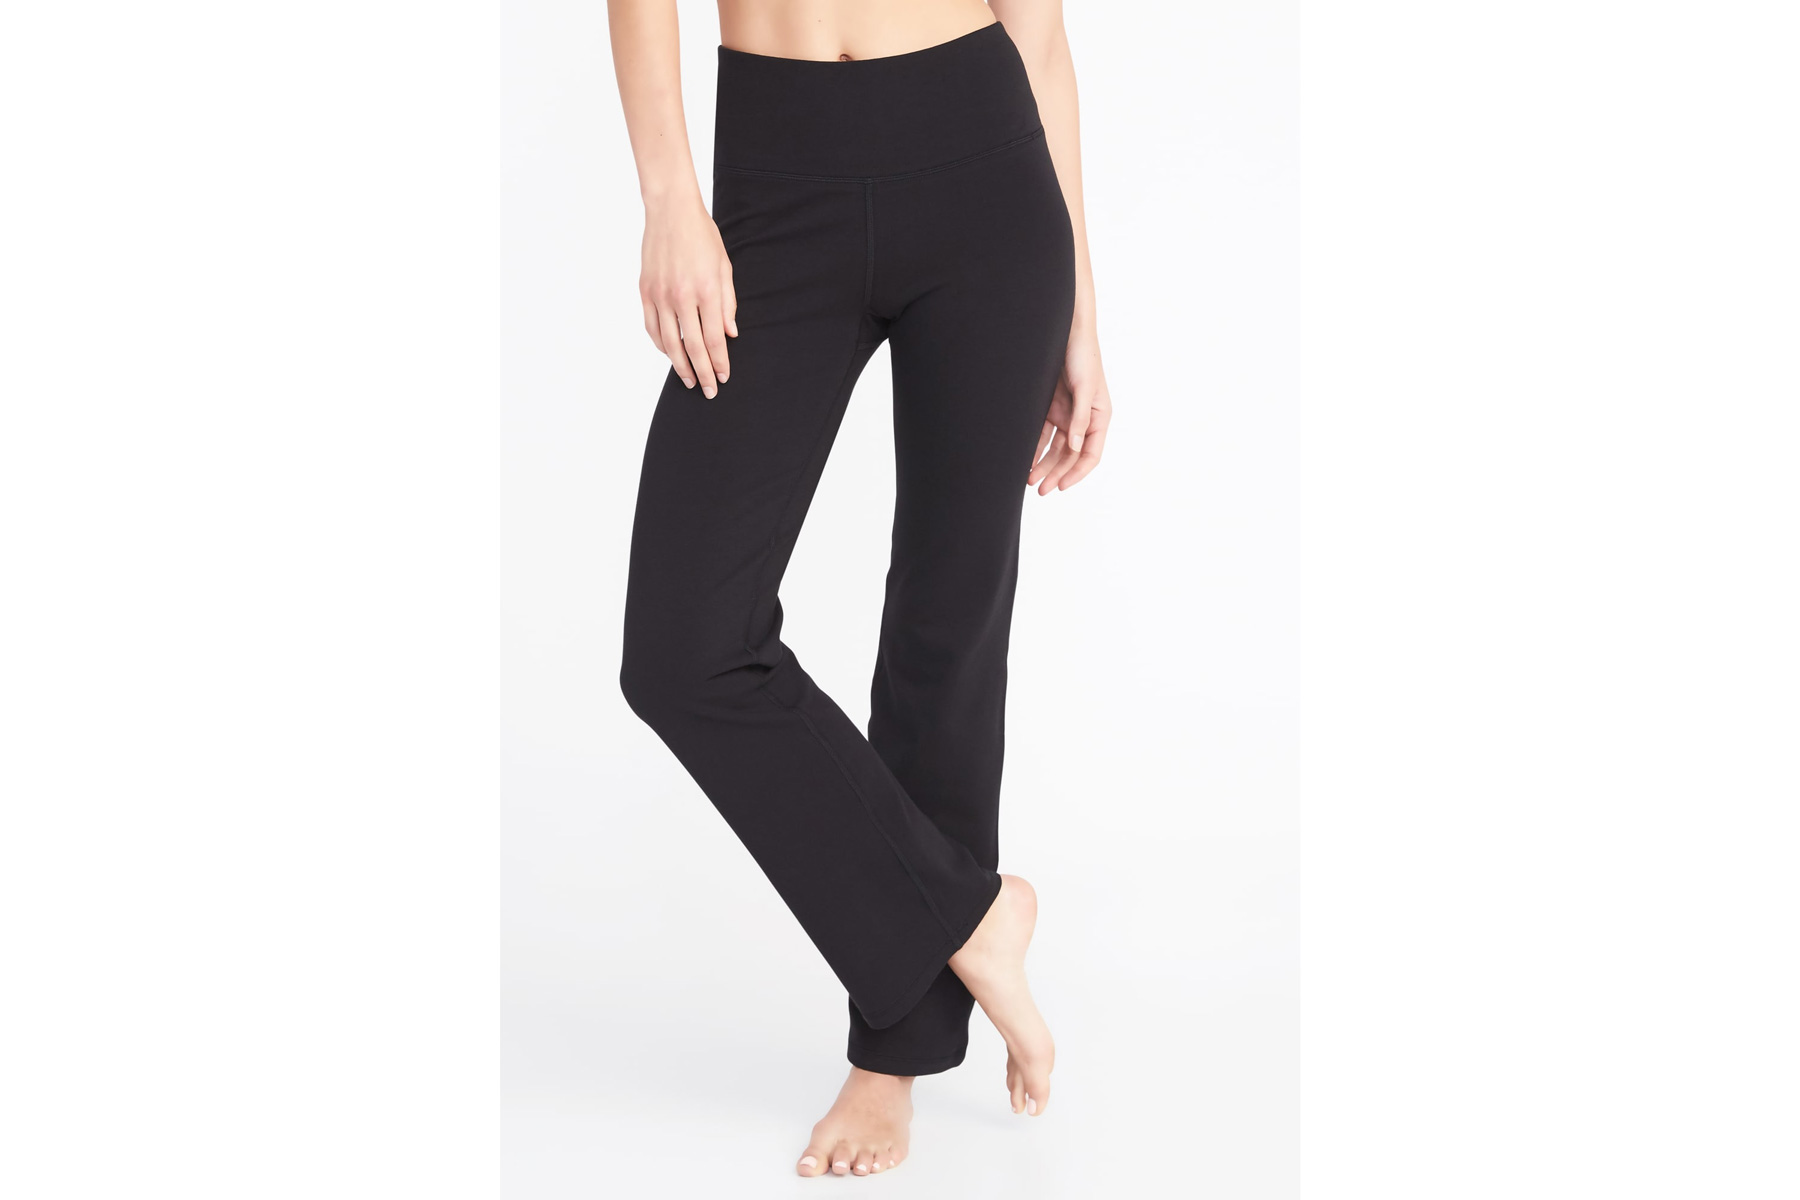 77b12b3d22 6 Yoga Pants We'd Wear All Day Long (Regardless of What the Haters ...